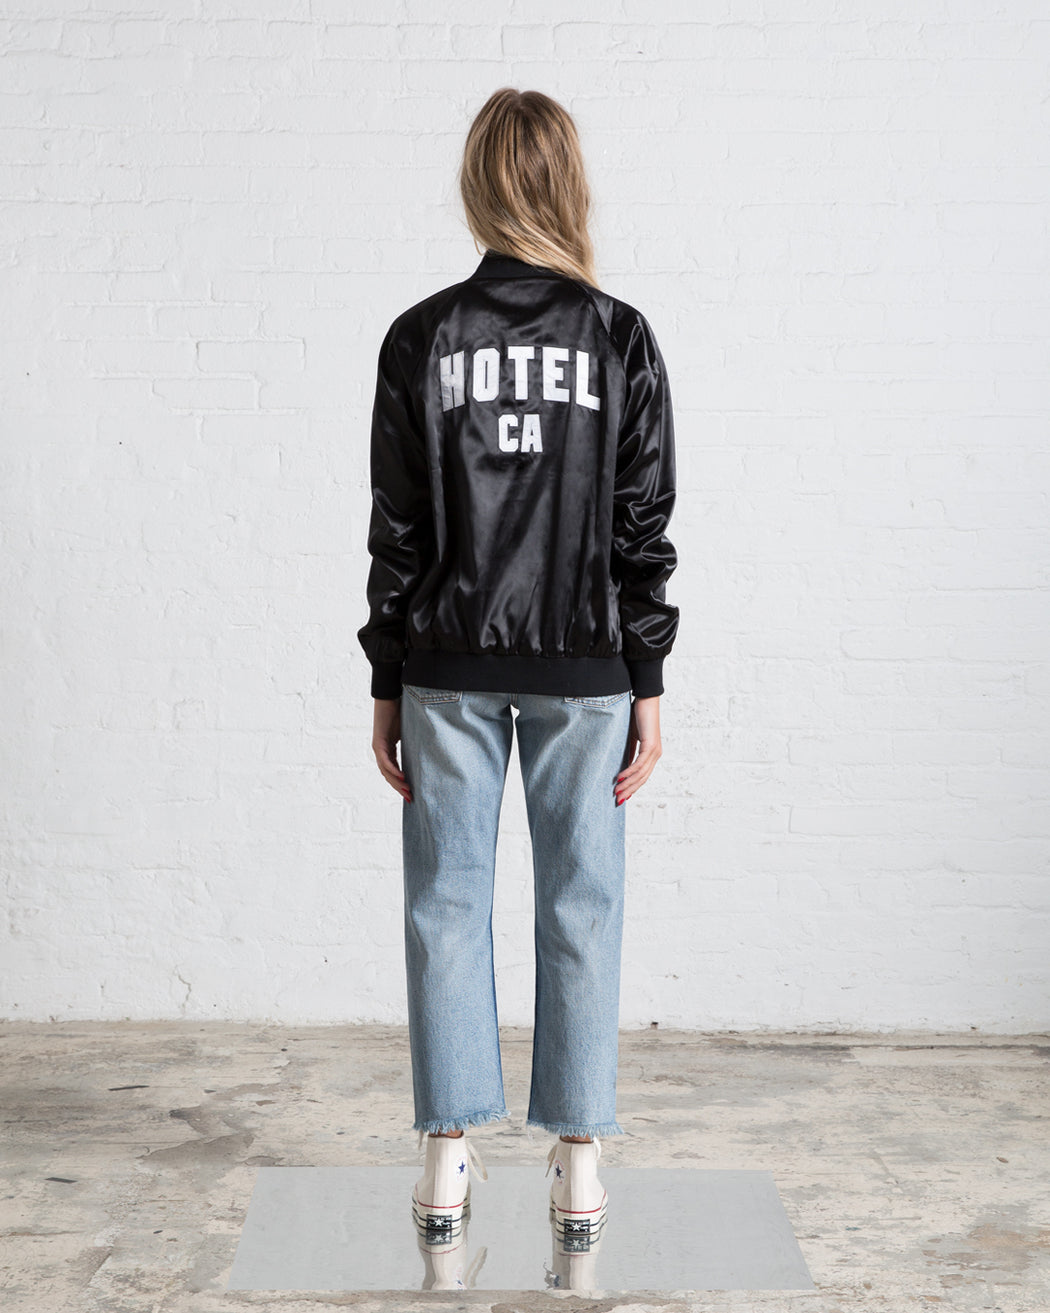 HOTEL CA Satin Jacket - Black/Cheetah (PRE-SALE)